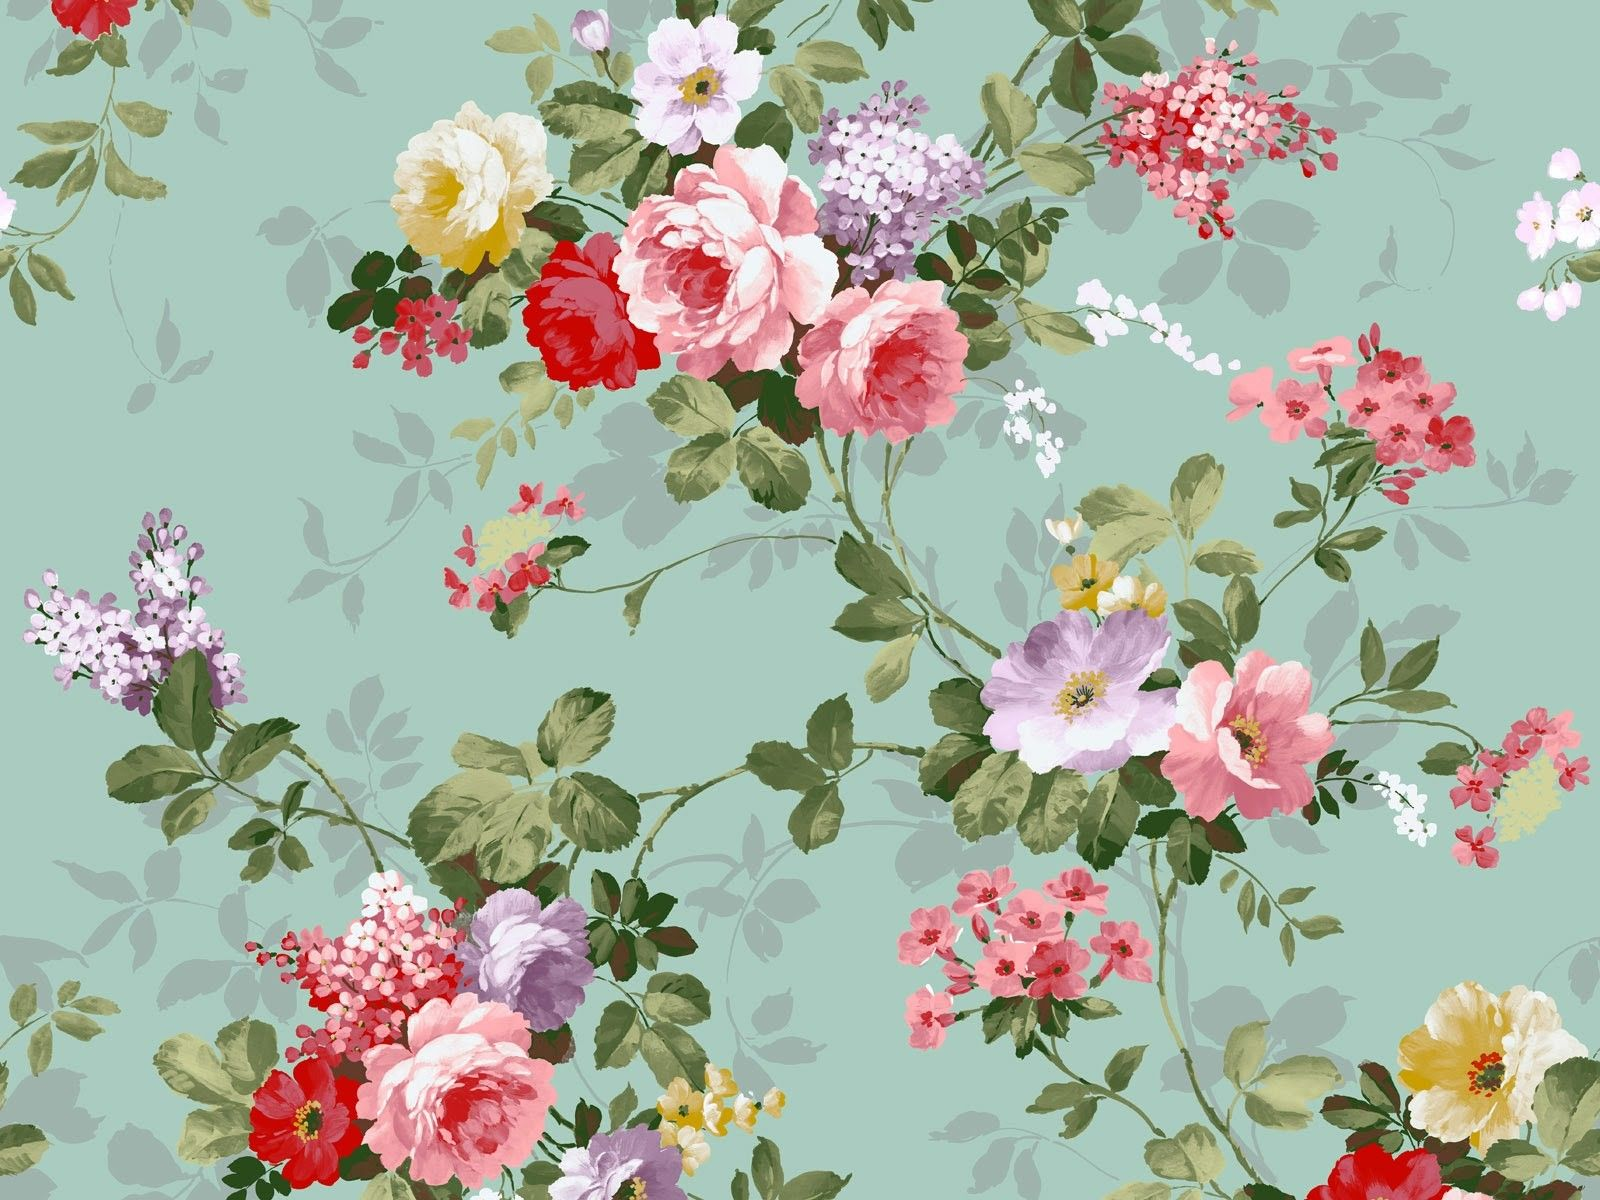 Vintage Floral Background Free Download 84023 Wallpaper Download